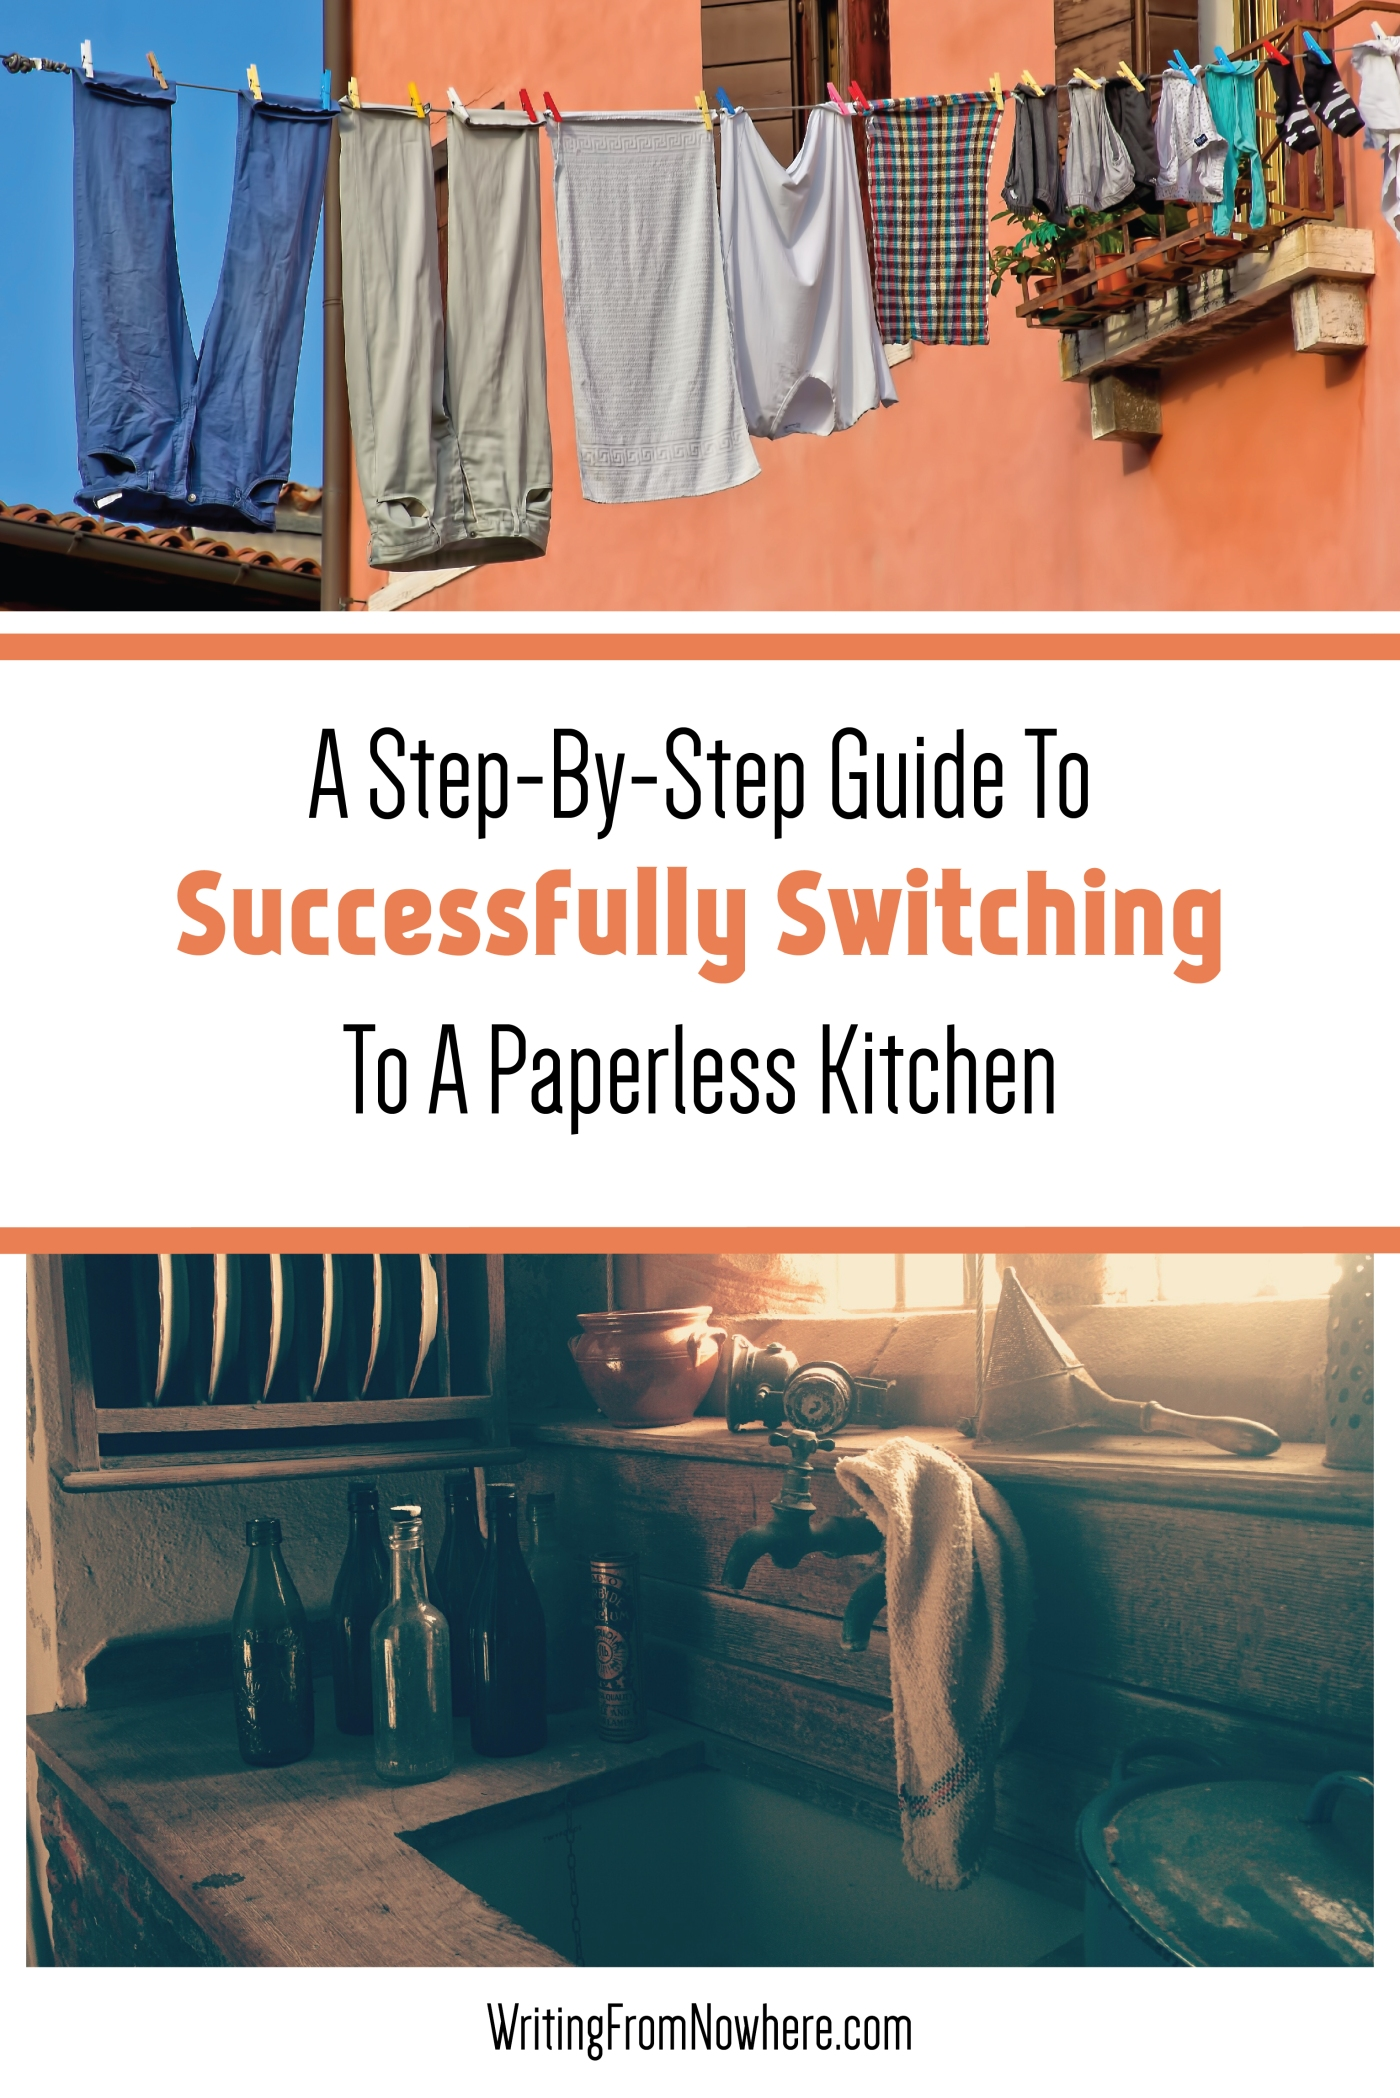 A Step-By-Step Guide To Successfully Going Paperless In The